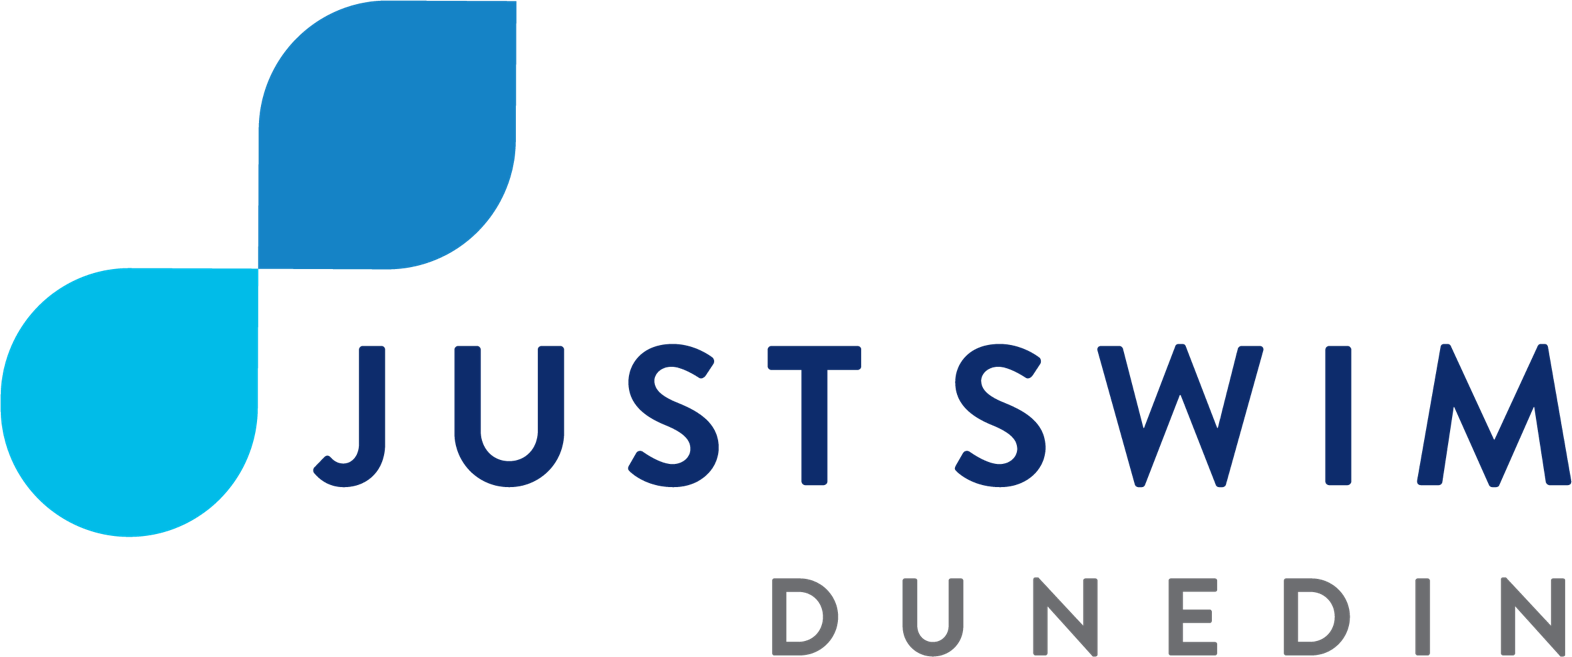 Just Swim Dunedin logo.